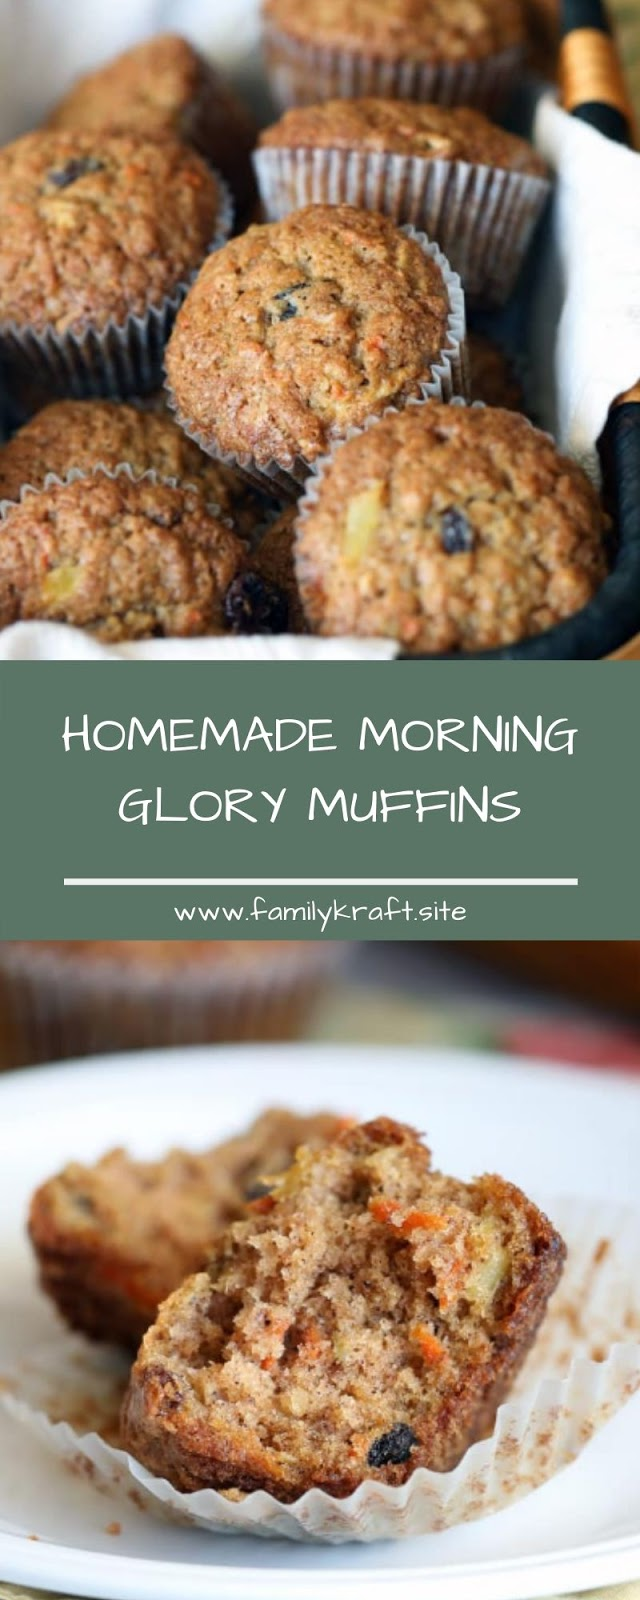 HOMEMADE MORNING GLORY MUFFINS